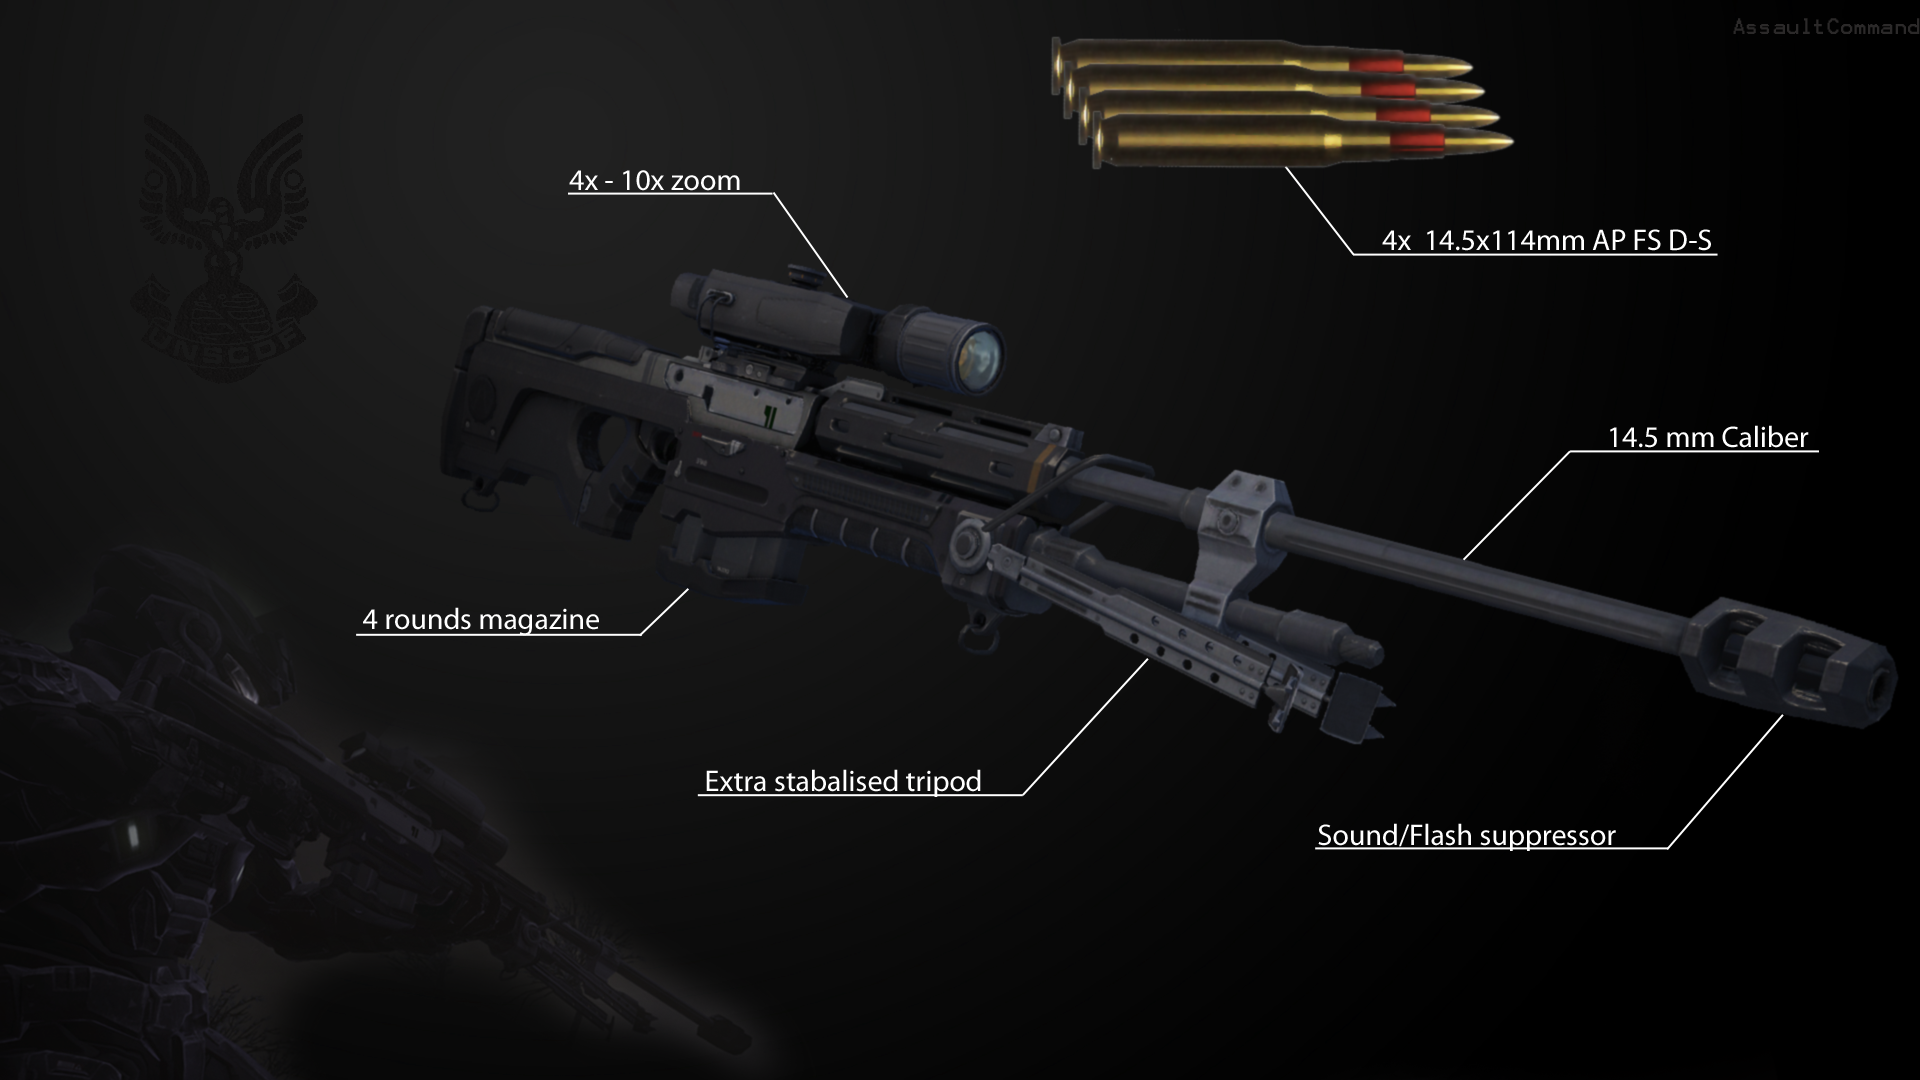 Sniper Rifle Snipers Artwork Wallpapers Hd Desktop And: Halo Wallpaper 1920x1080